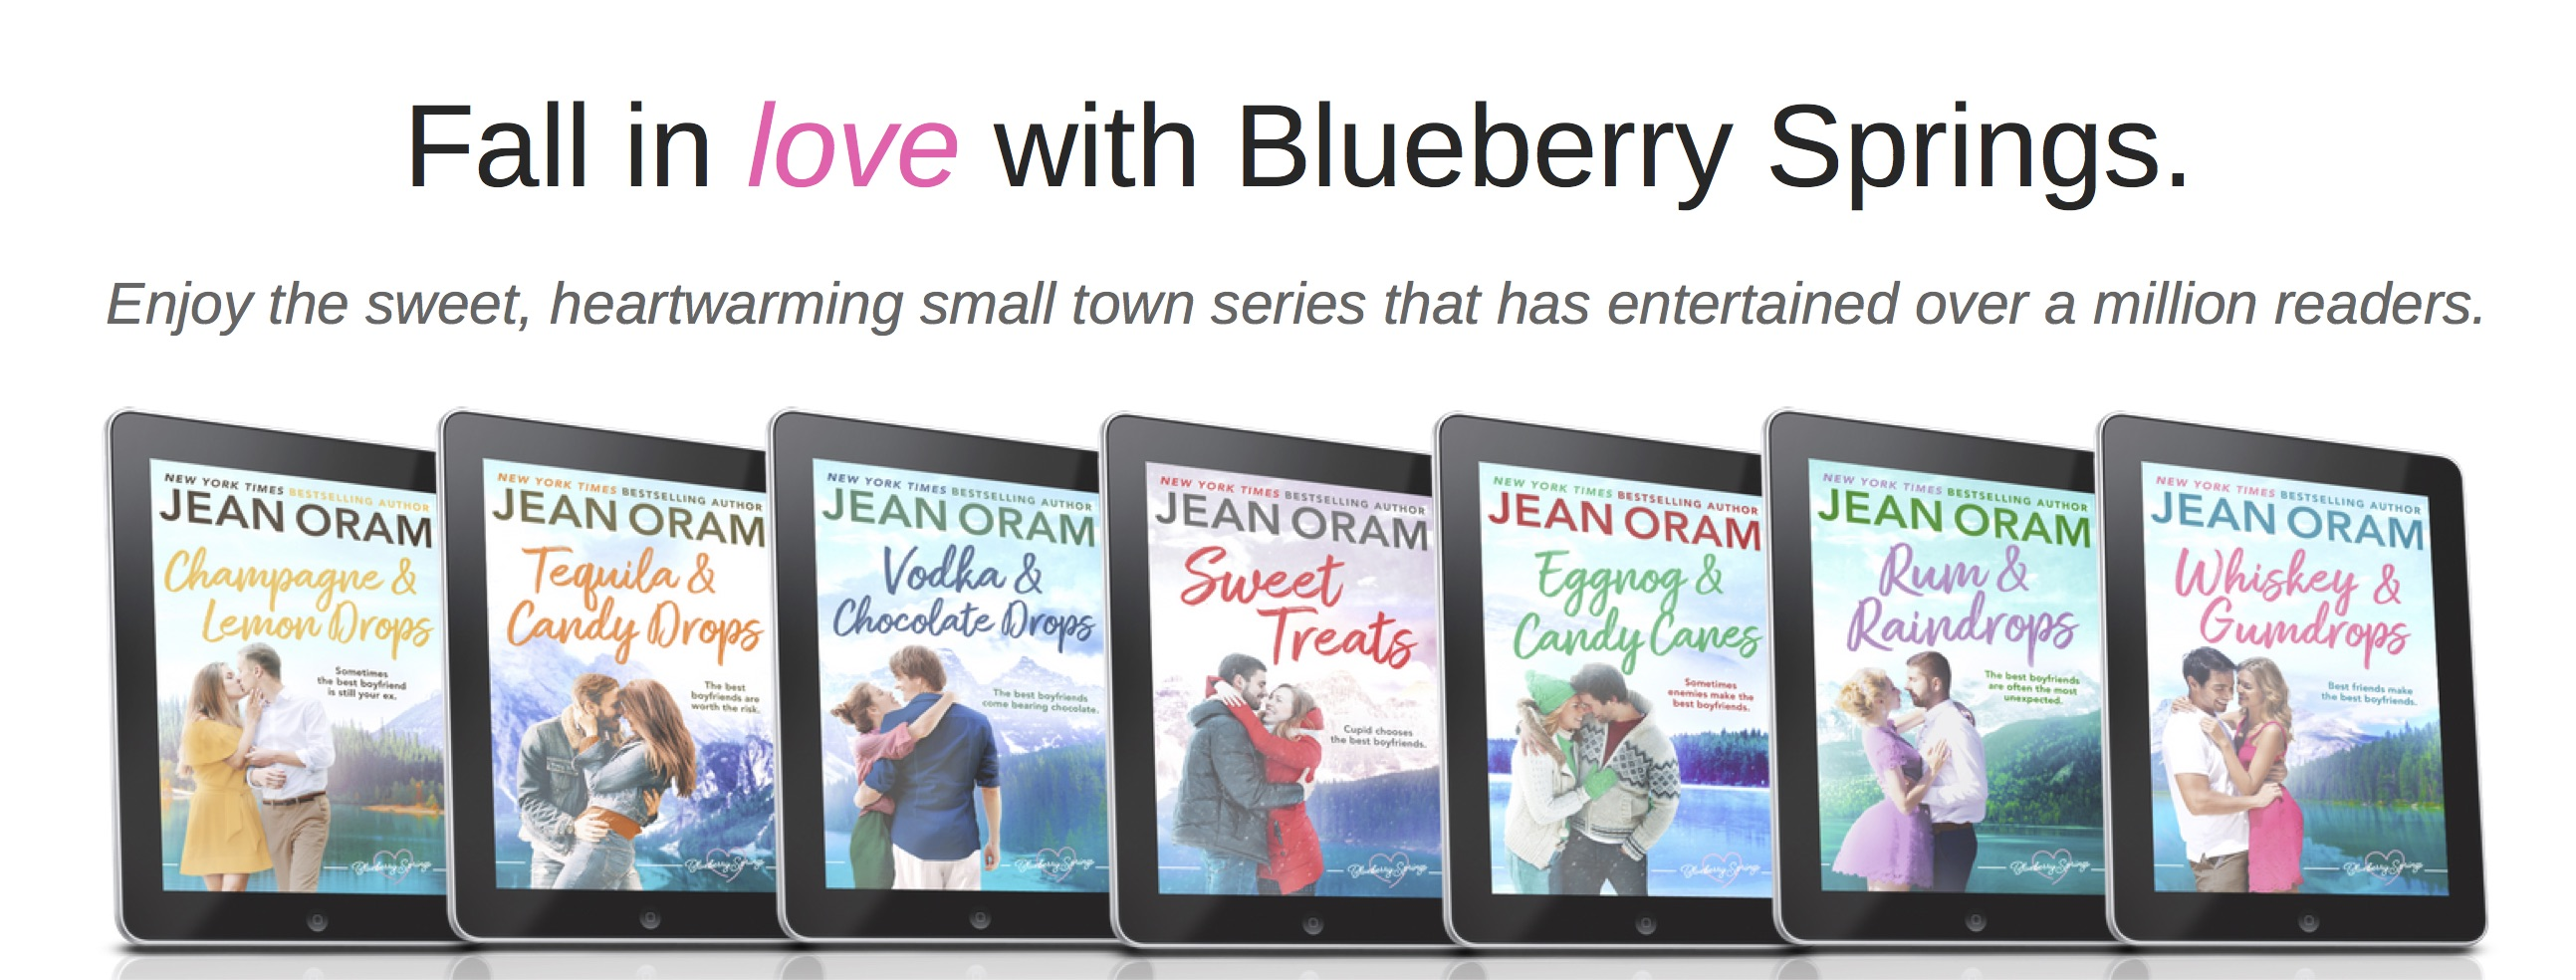 Blueberry Springs small town sweet romance series by Jean Oram